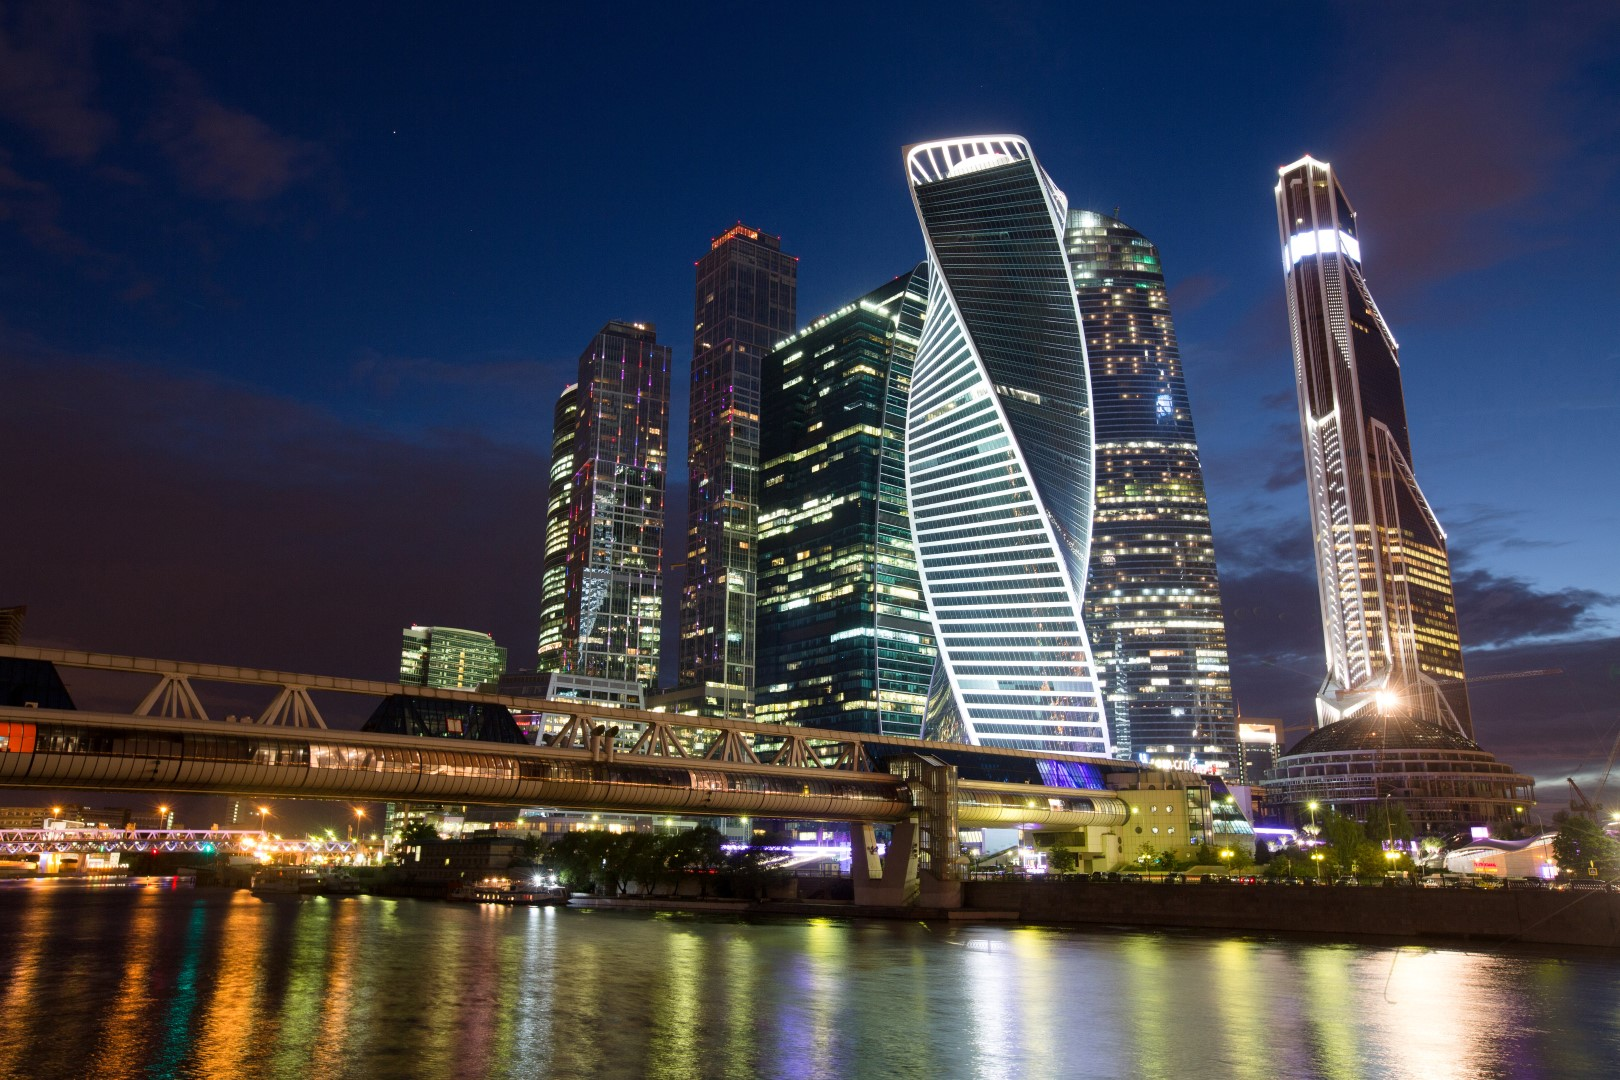 Lights illuminate commercial office skyscrapers at the Moscow International Business Center (MIBC), also known as Moscow City, on the River Moskva in Moscow, Russia, on Tuesday, Aug. 16, 2016. Despite an economic contraction since the start of 2015, unemployment has now dropped for three straight months to near the lowest in a year. Photographer: Andrey Rudakov/Bloomberg